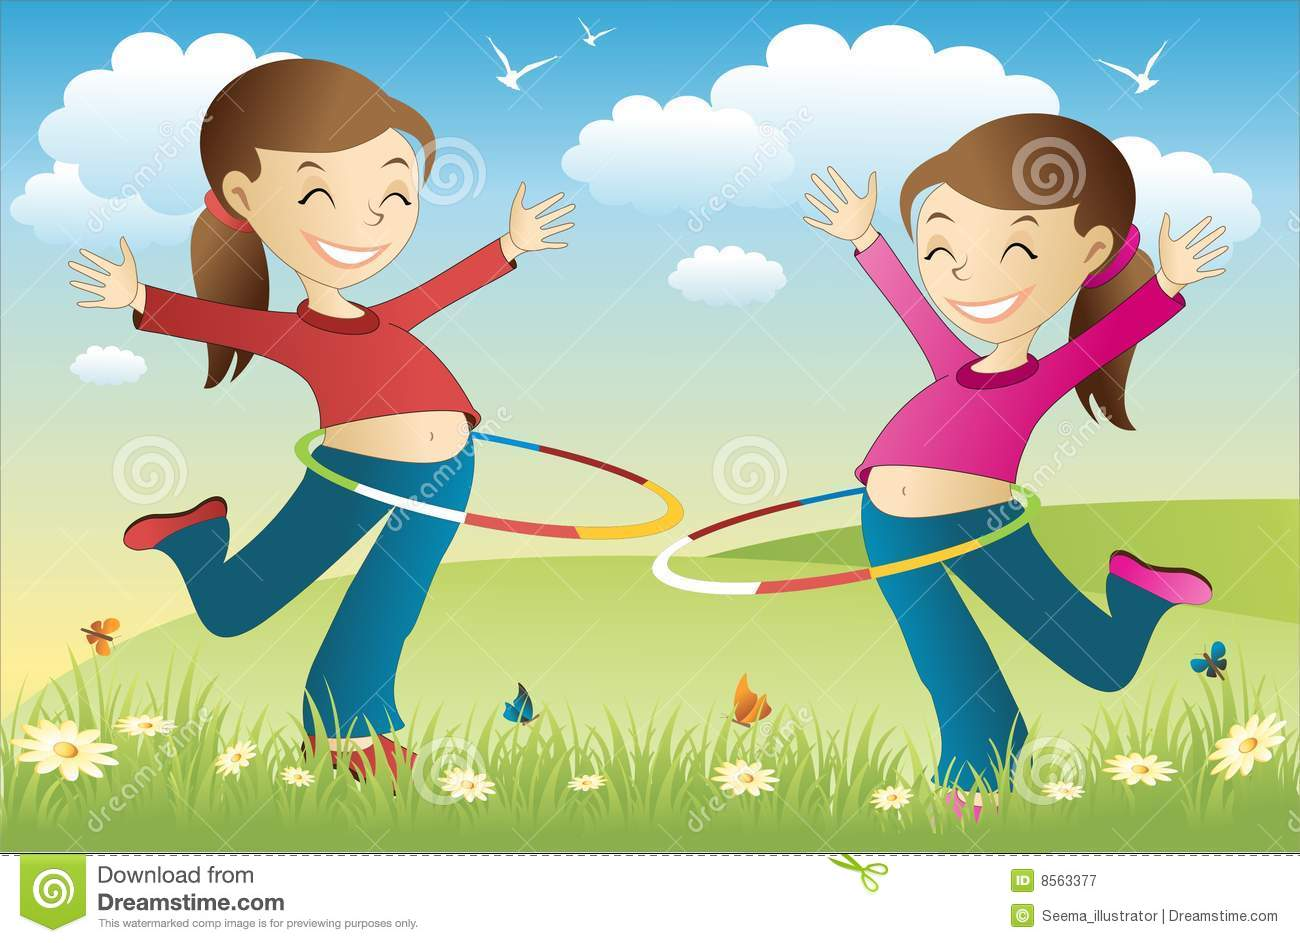 Hula Hoop Twins Royalty Free Stock Photography - Image: 8563377